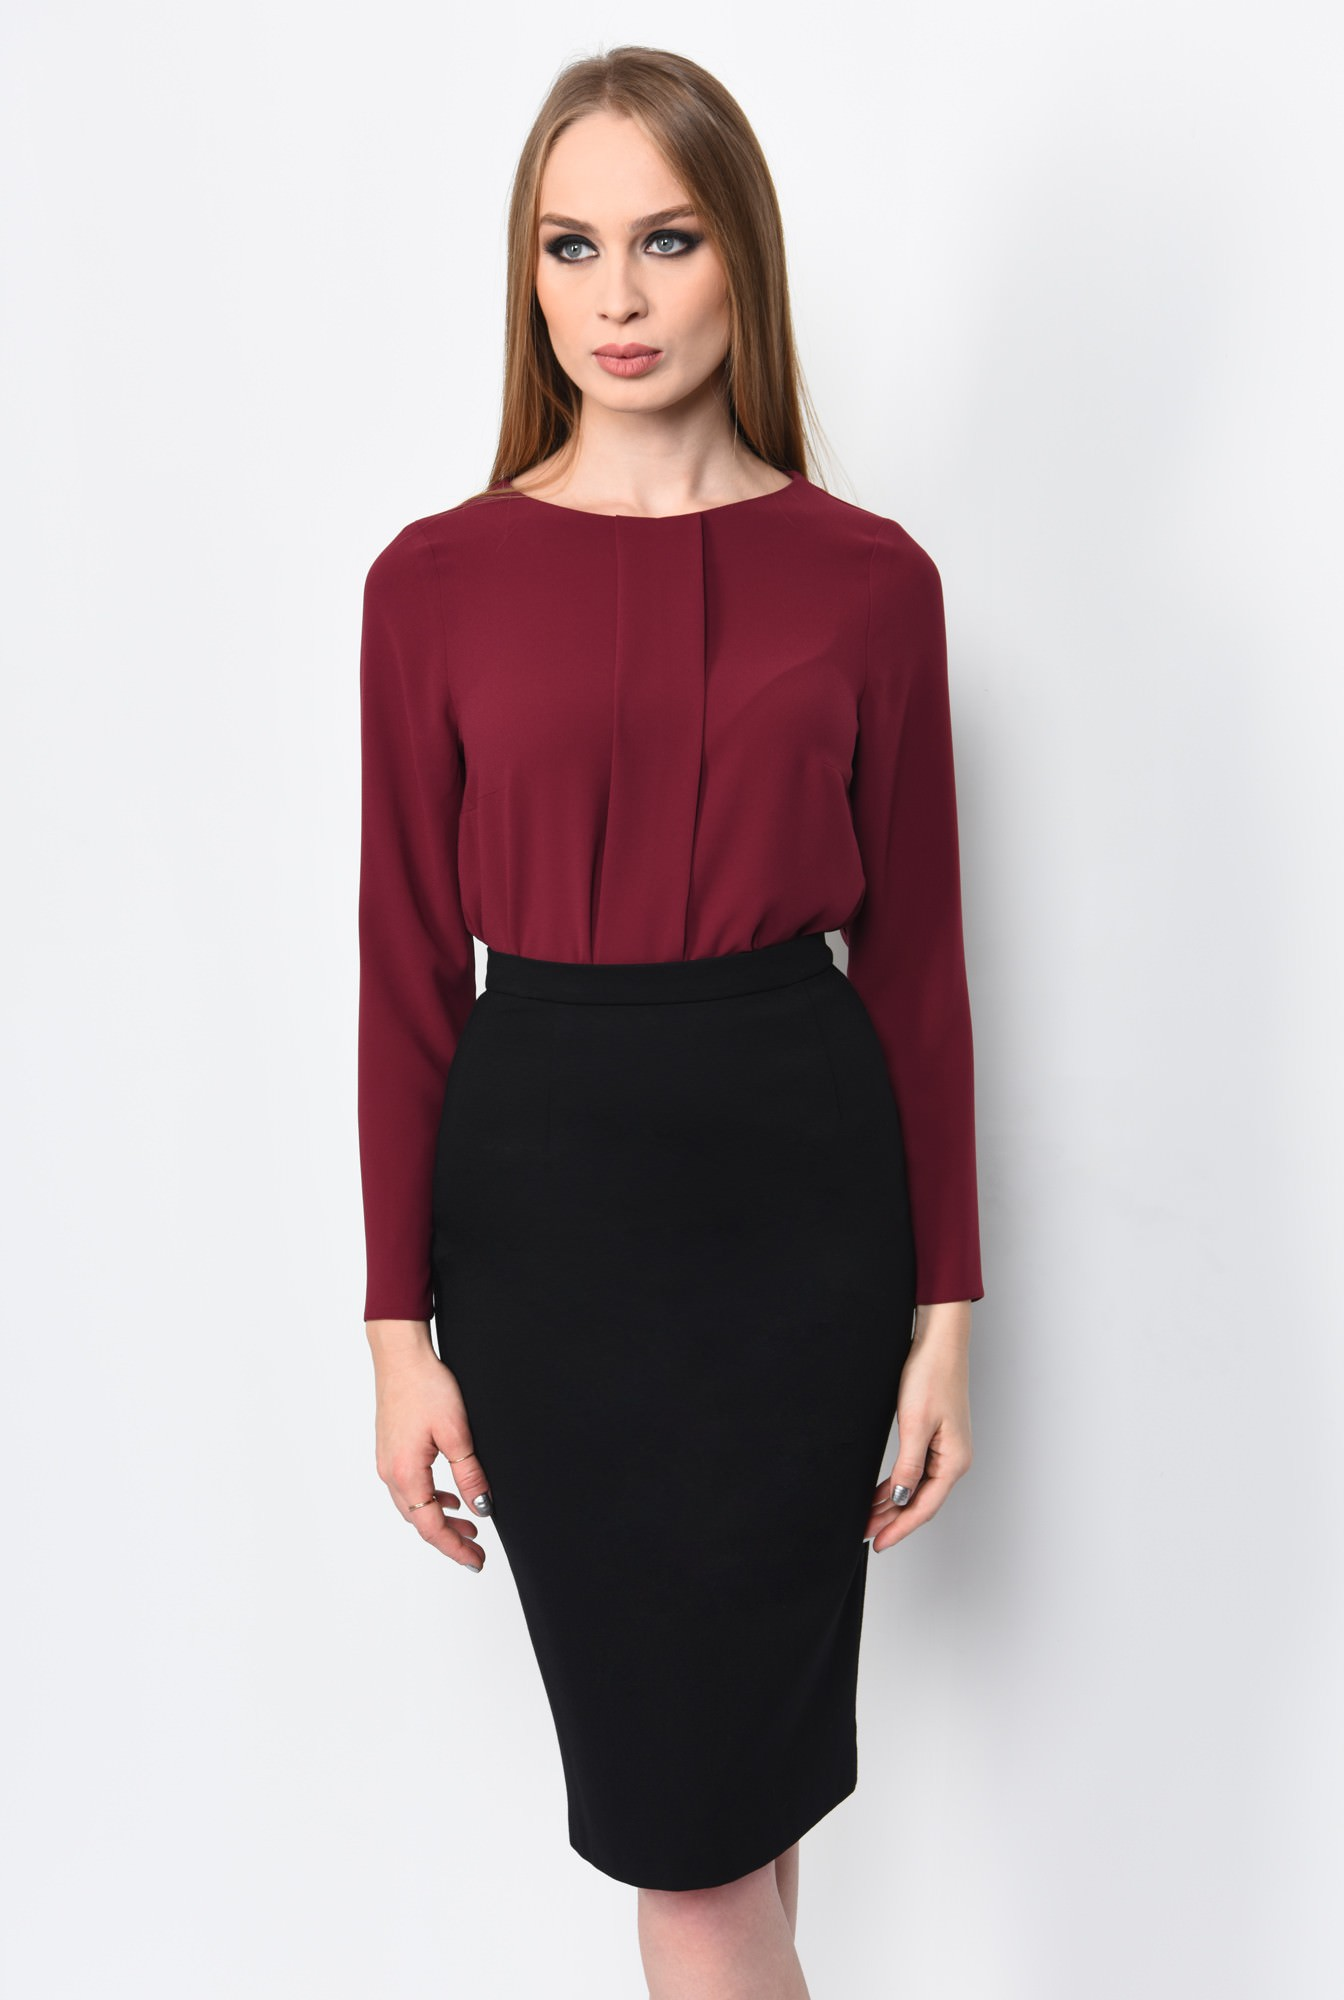 0 - BLUZA OFFICE DREAPTA BL 162-BURGUNDY